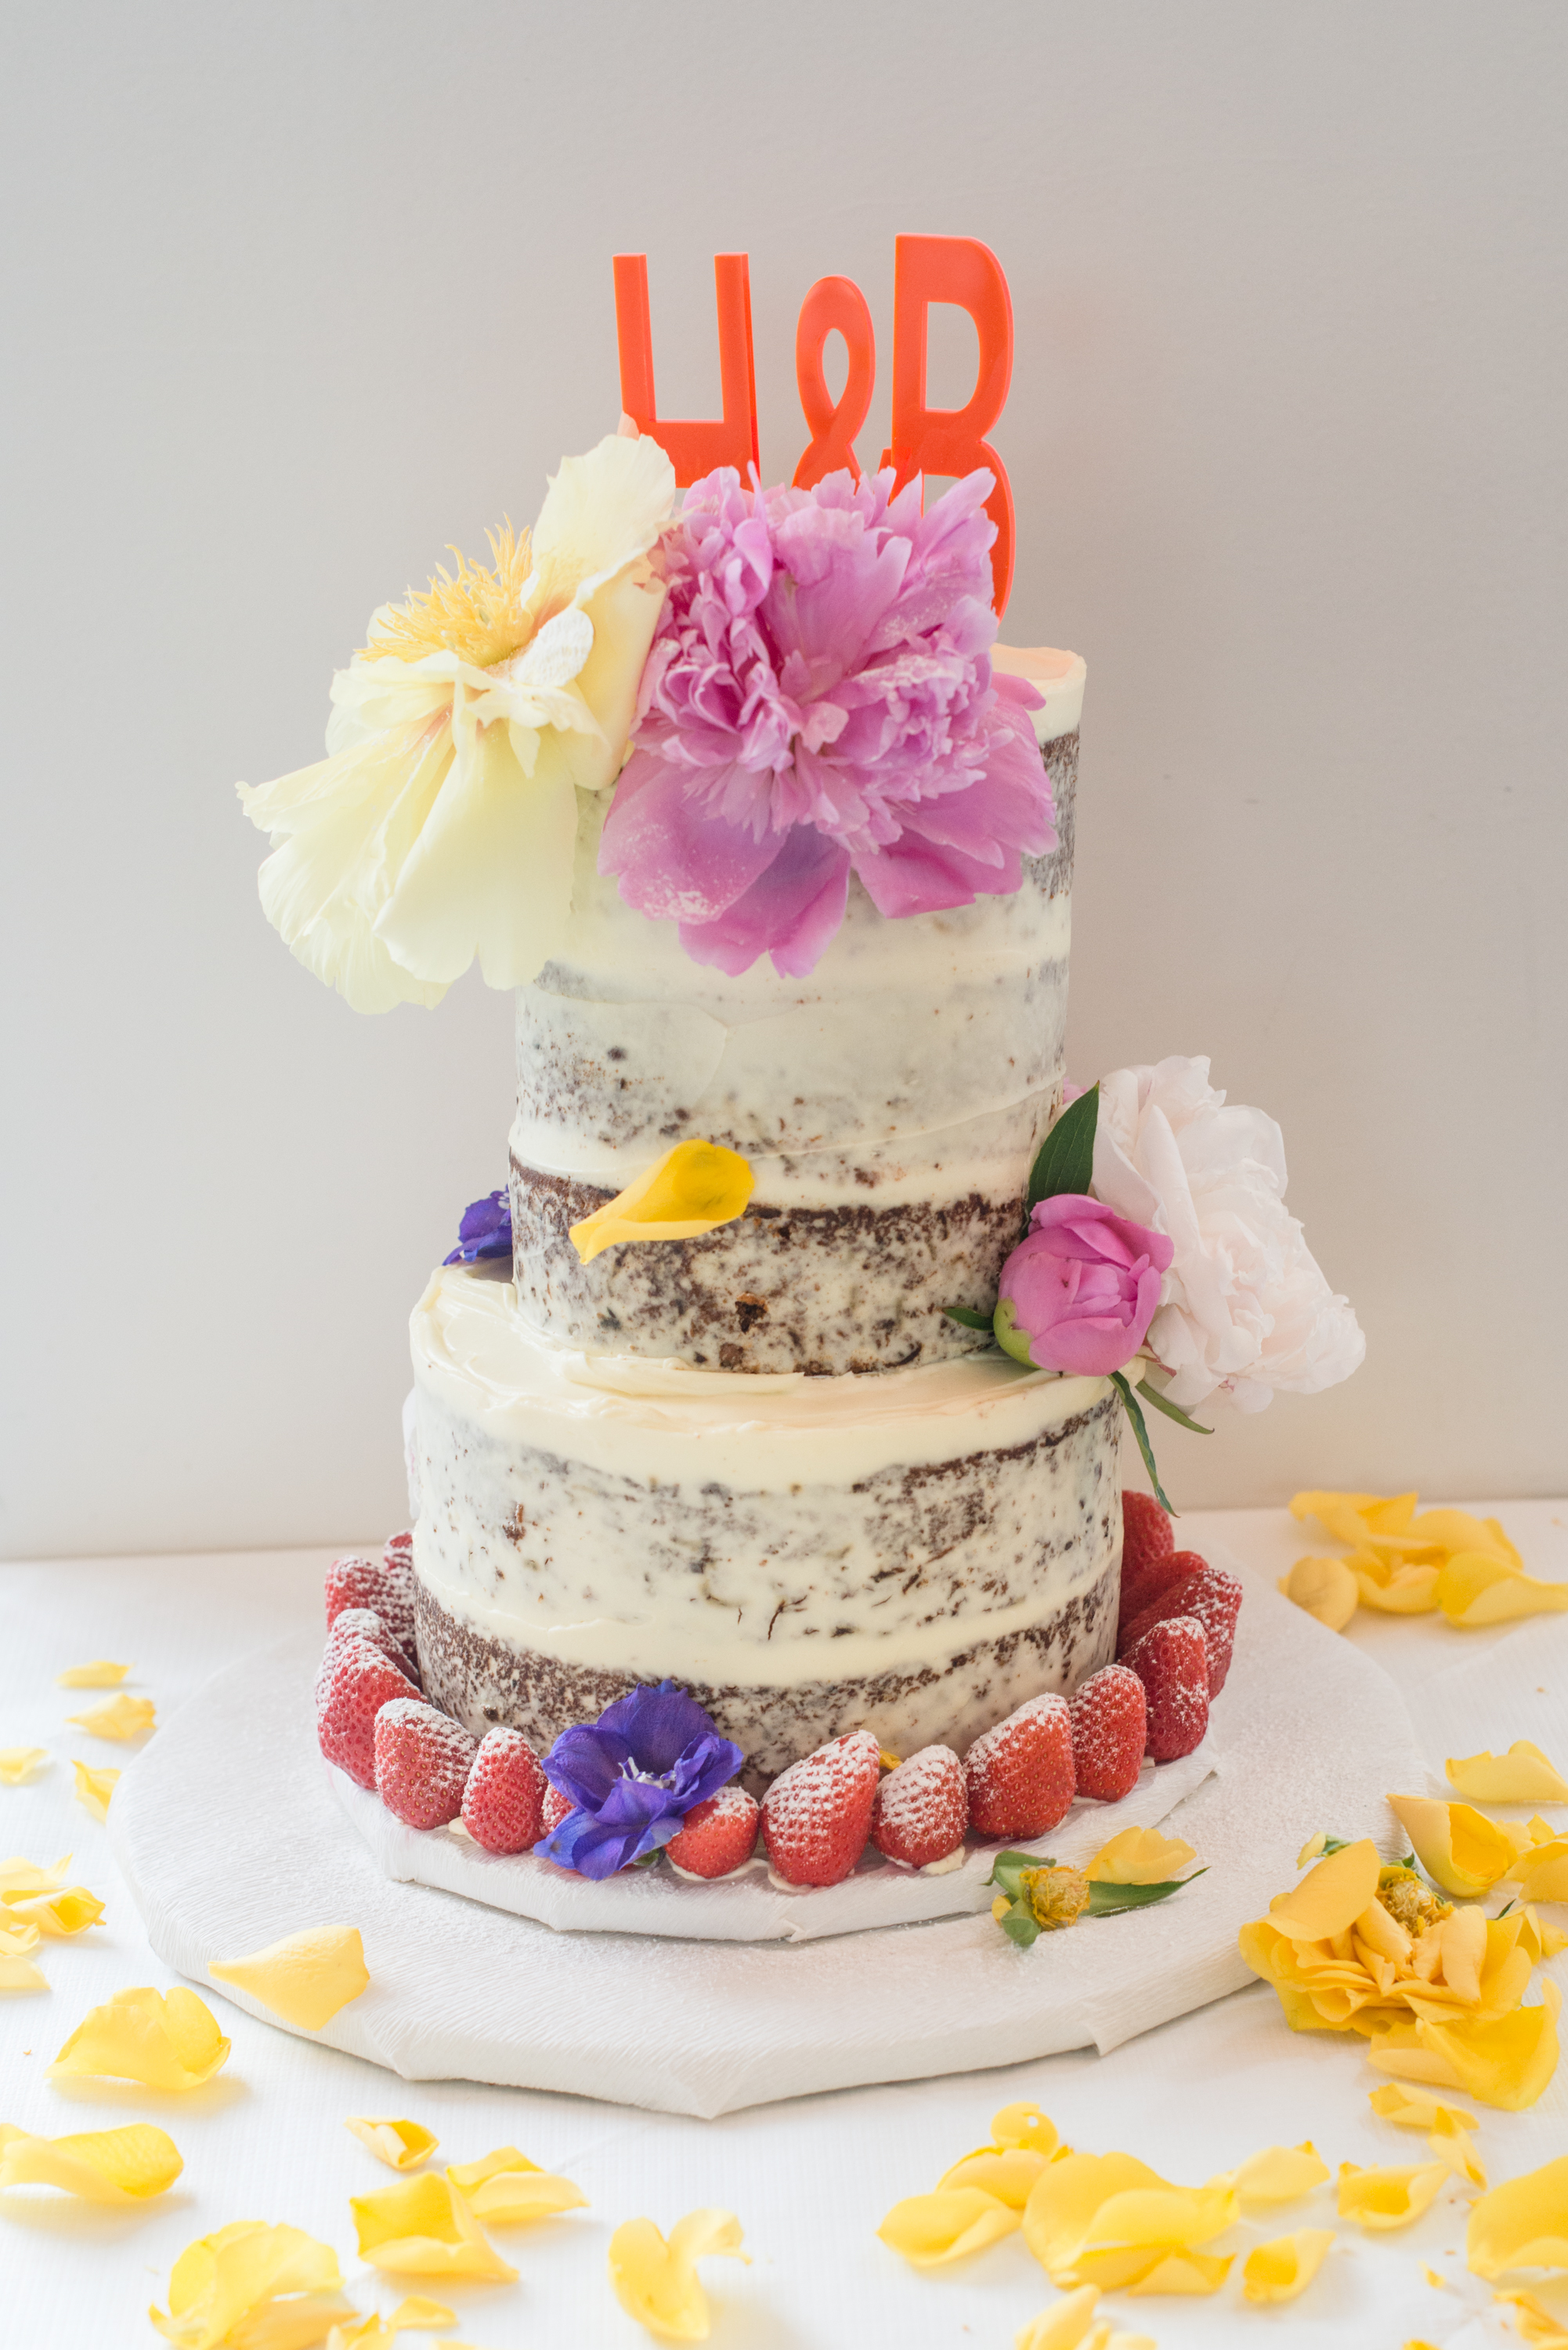 violet bakery wedding cakes pictures food moments of 2014 blanche vaughan 21622